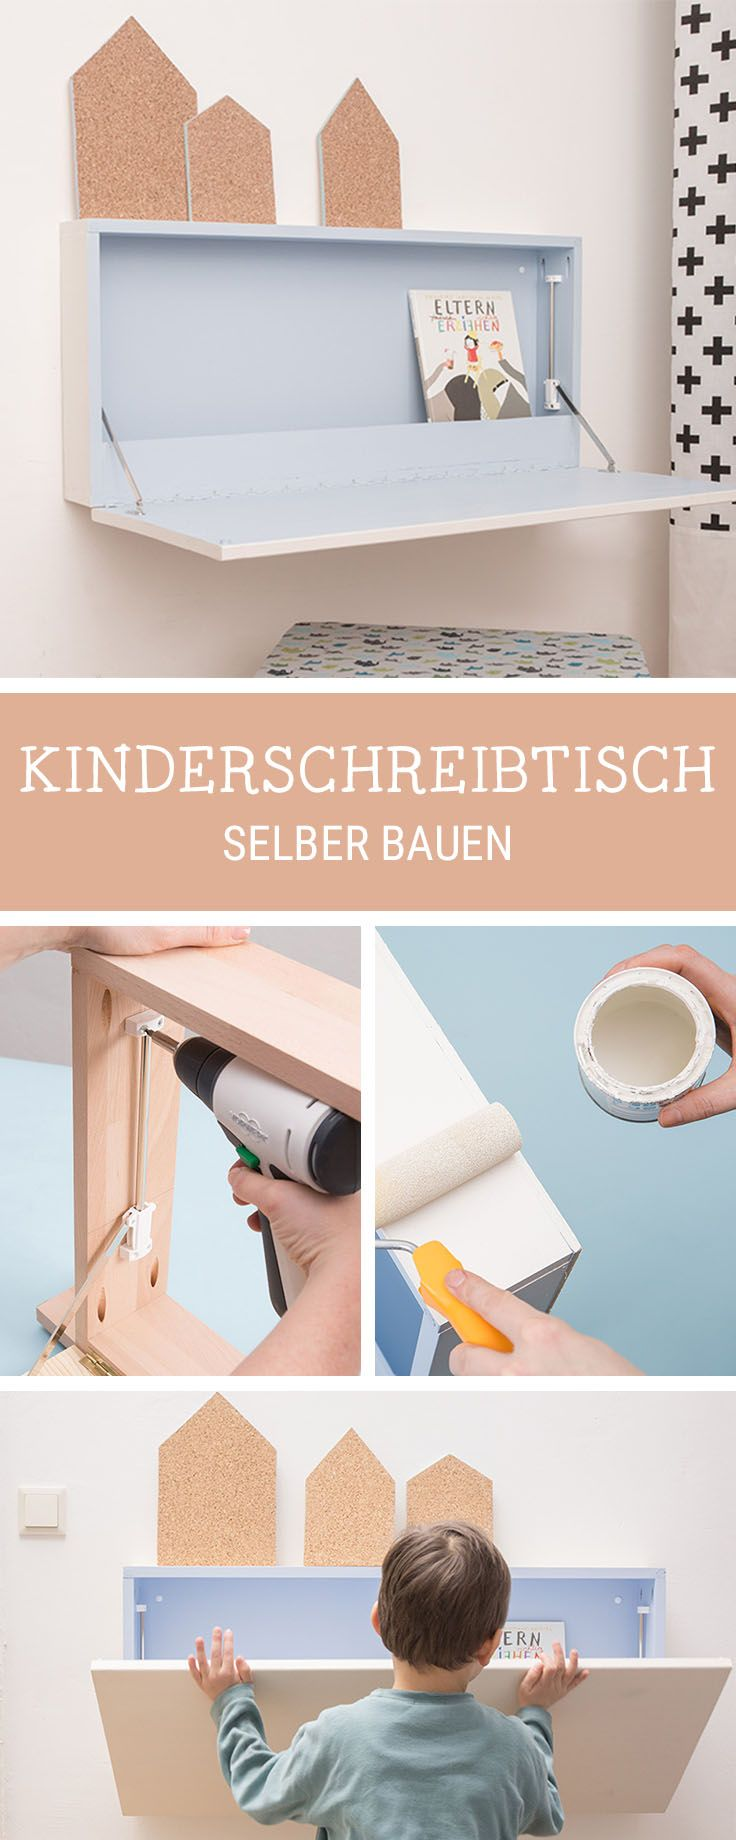 Möbel-DIY fürs Kinderzimmer: Klappbaren Schreibtisch bauen / workspace diy: how to craft a working desk for children via DaWanda.com